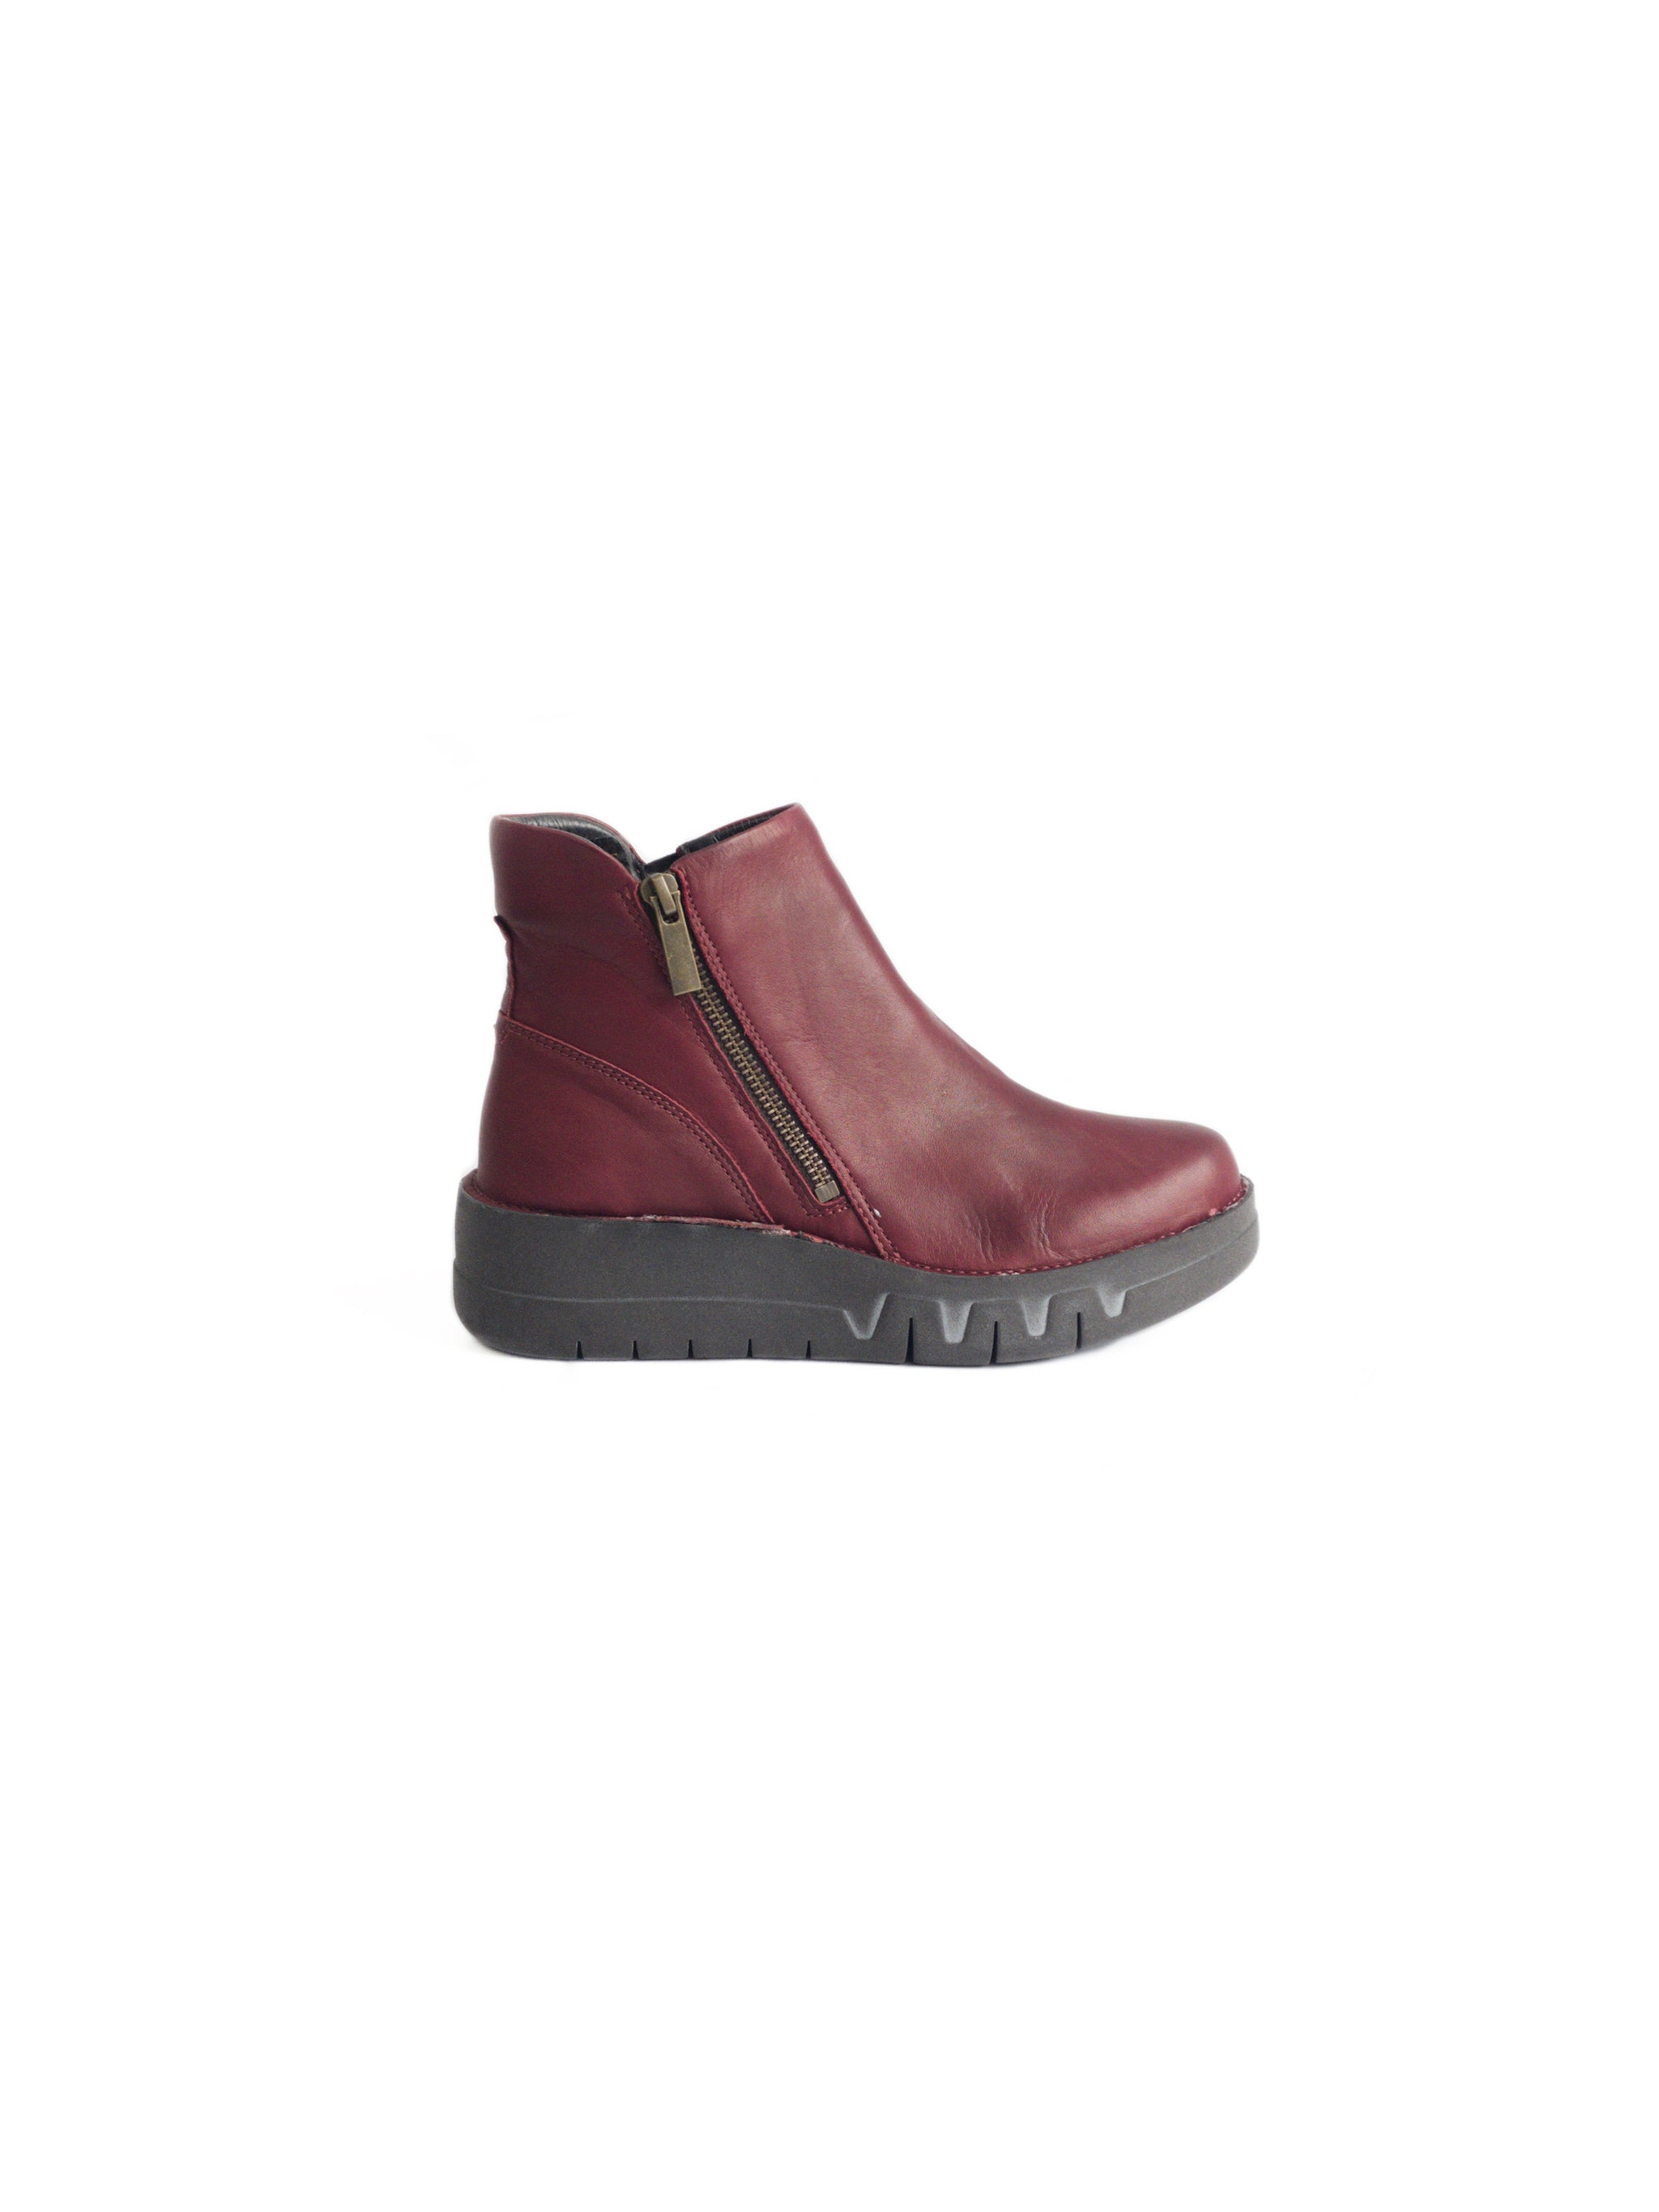 MIZ MOOZ - LASS IN BORDEAUX LEATHER